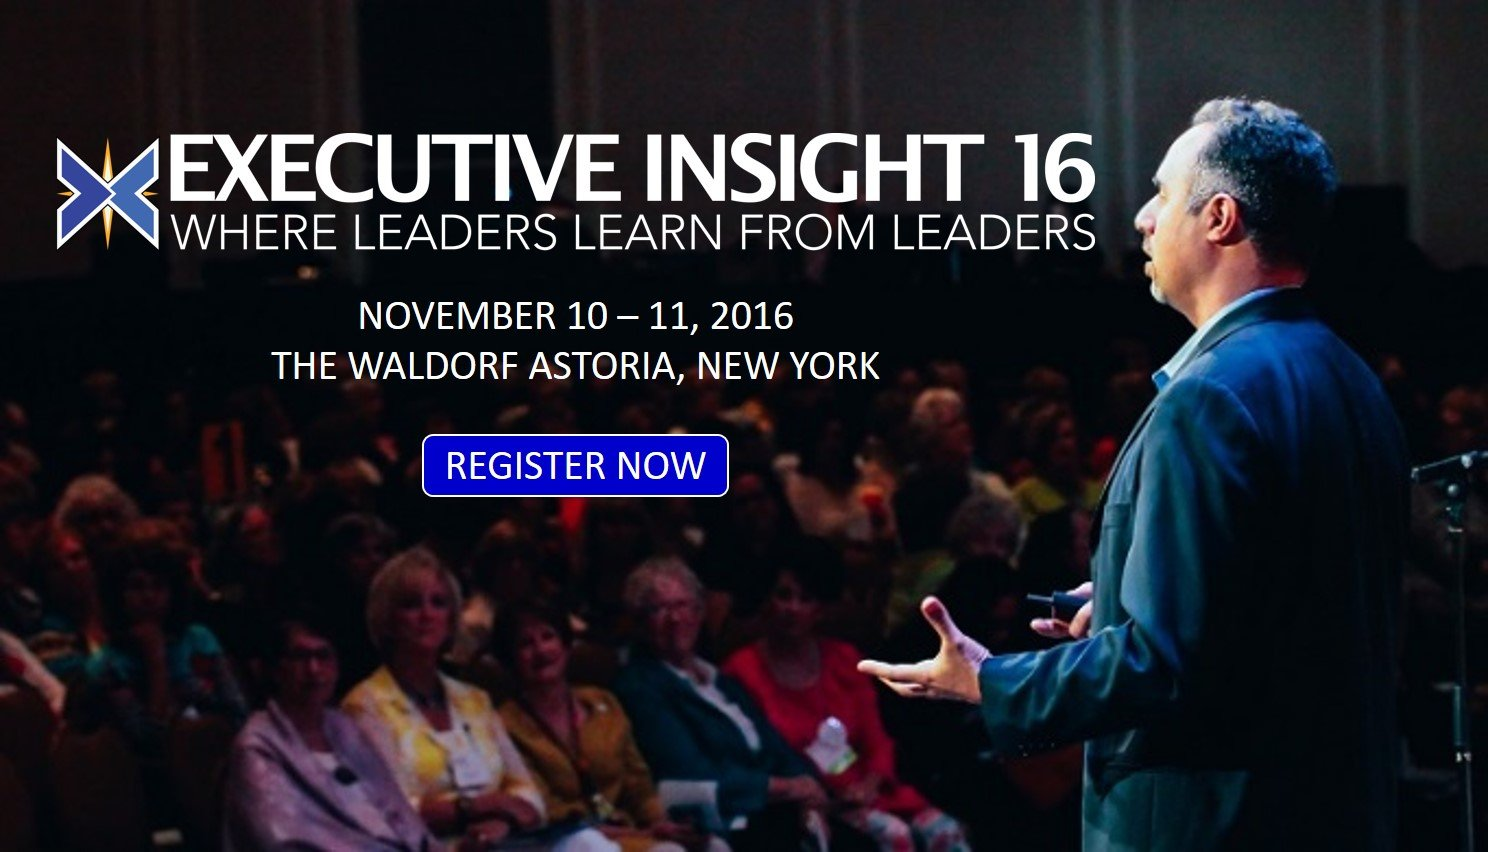 Executive Insight 16 - a Premier Leadership Conference